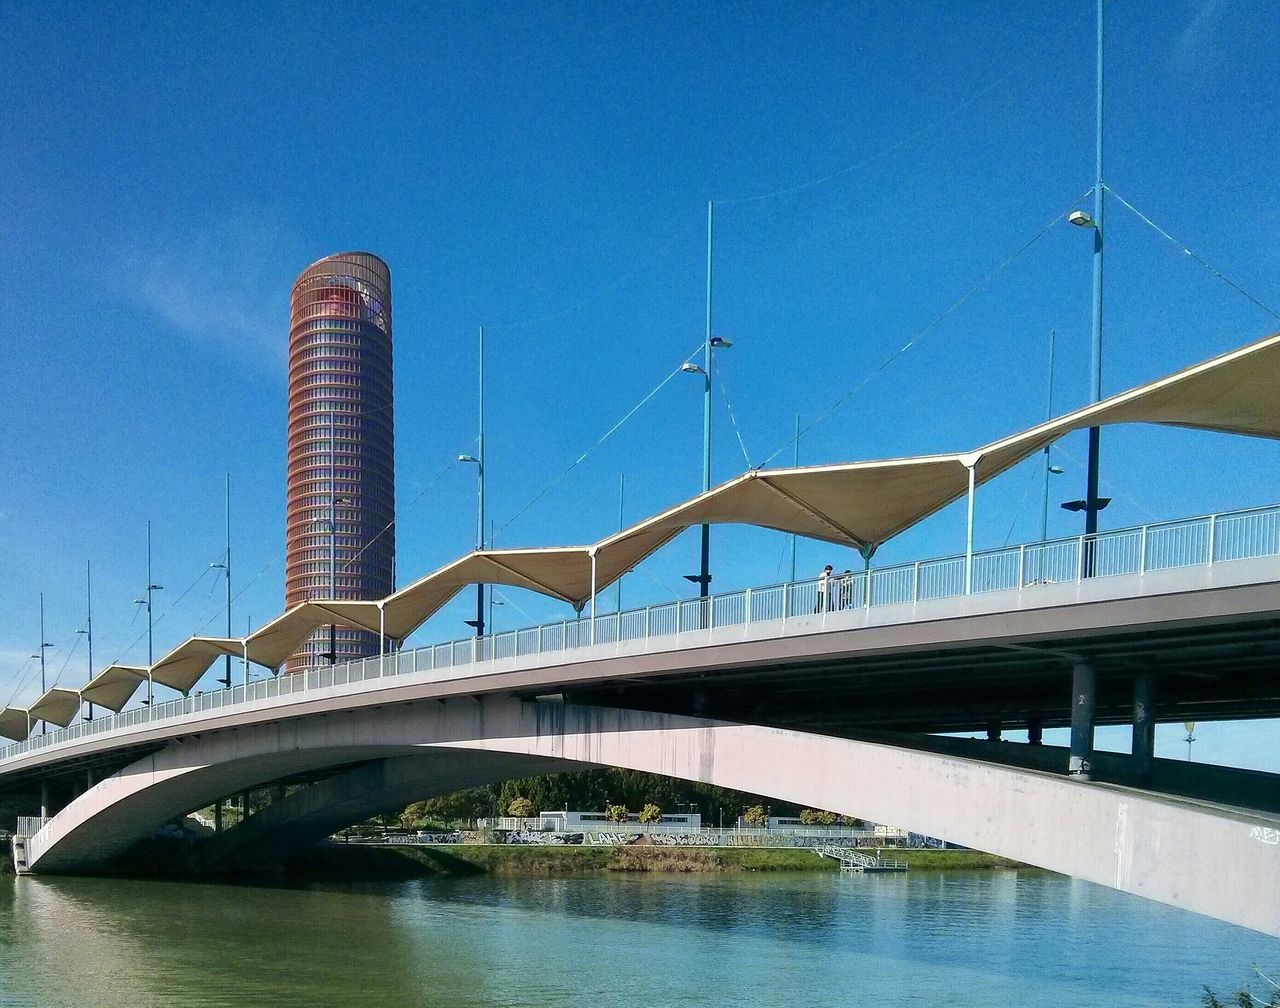 Puente del Cristo de la Expiración Alternative Energy Architecture Bridge Bridge - Man Made Structure Built Structure Connection Development Engineering Environmental Conservation Famous Place Fuel And Power Generation International Landmark No People Renewable Energy SUPPORT Wind Power Wind Turbine Windmill